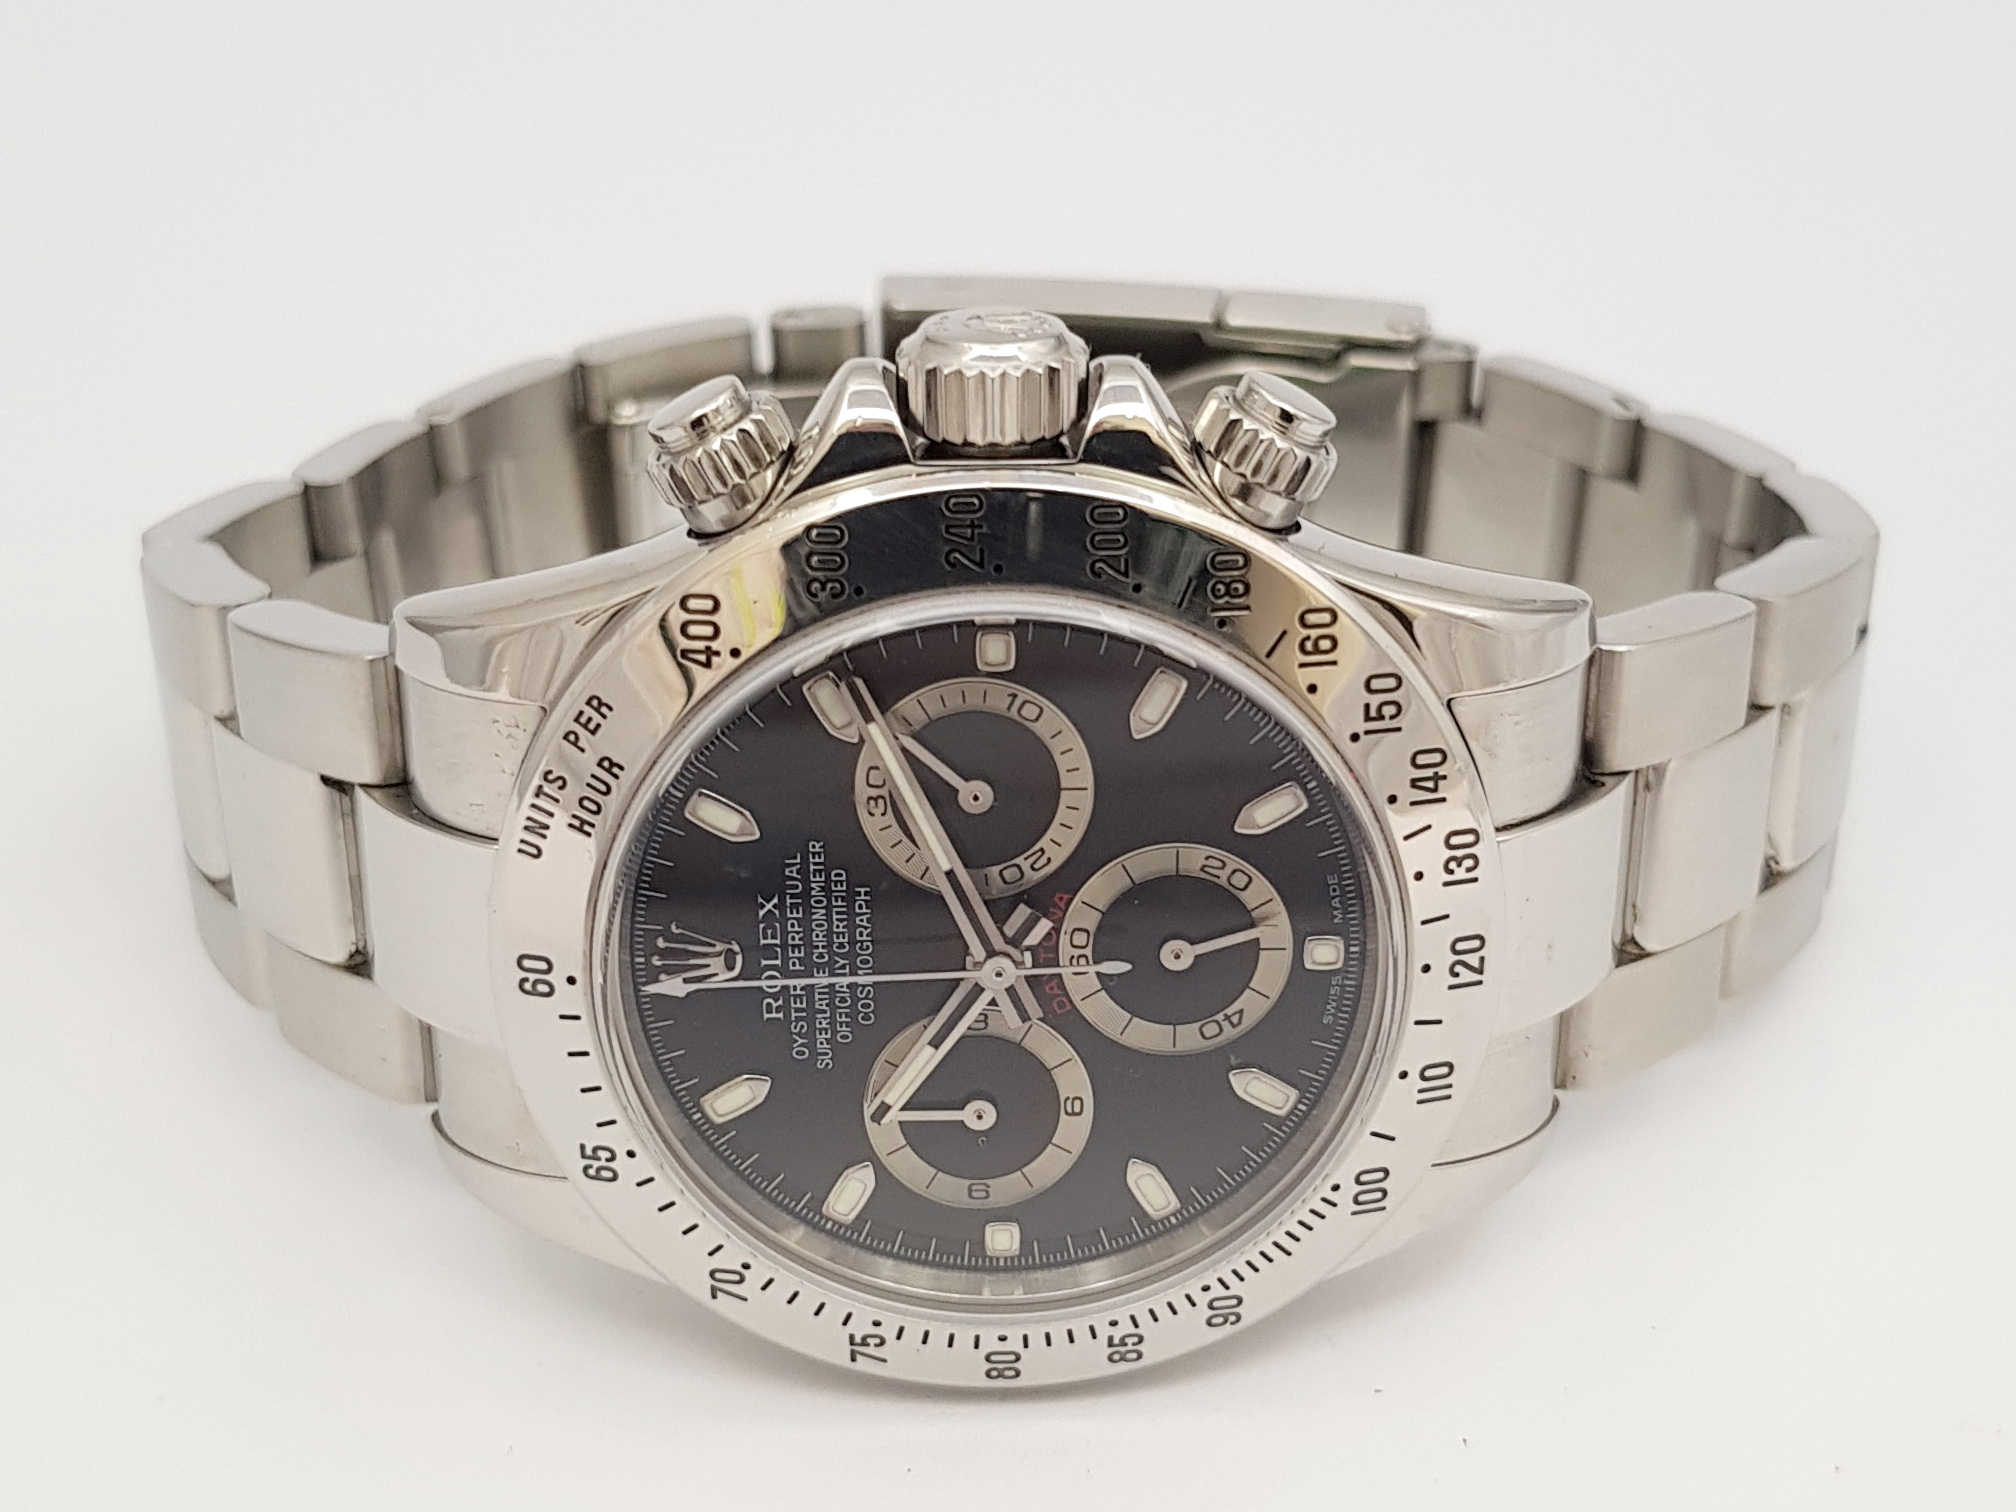 rolex daytona stahl herren cosmograph ref 116520 von 2005. Black Bedroom Furniture Sets. Home Design Ideas